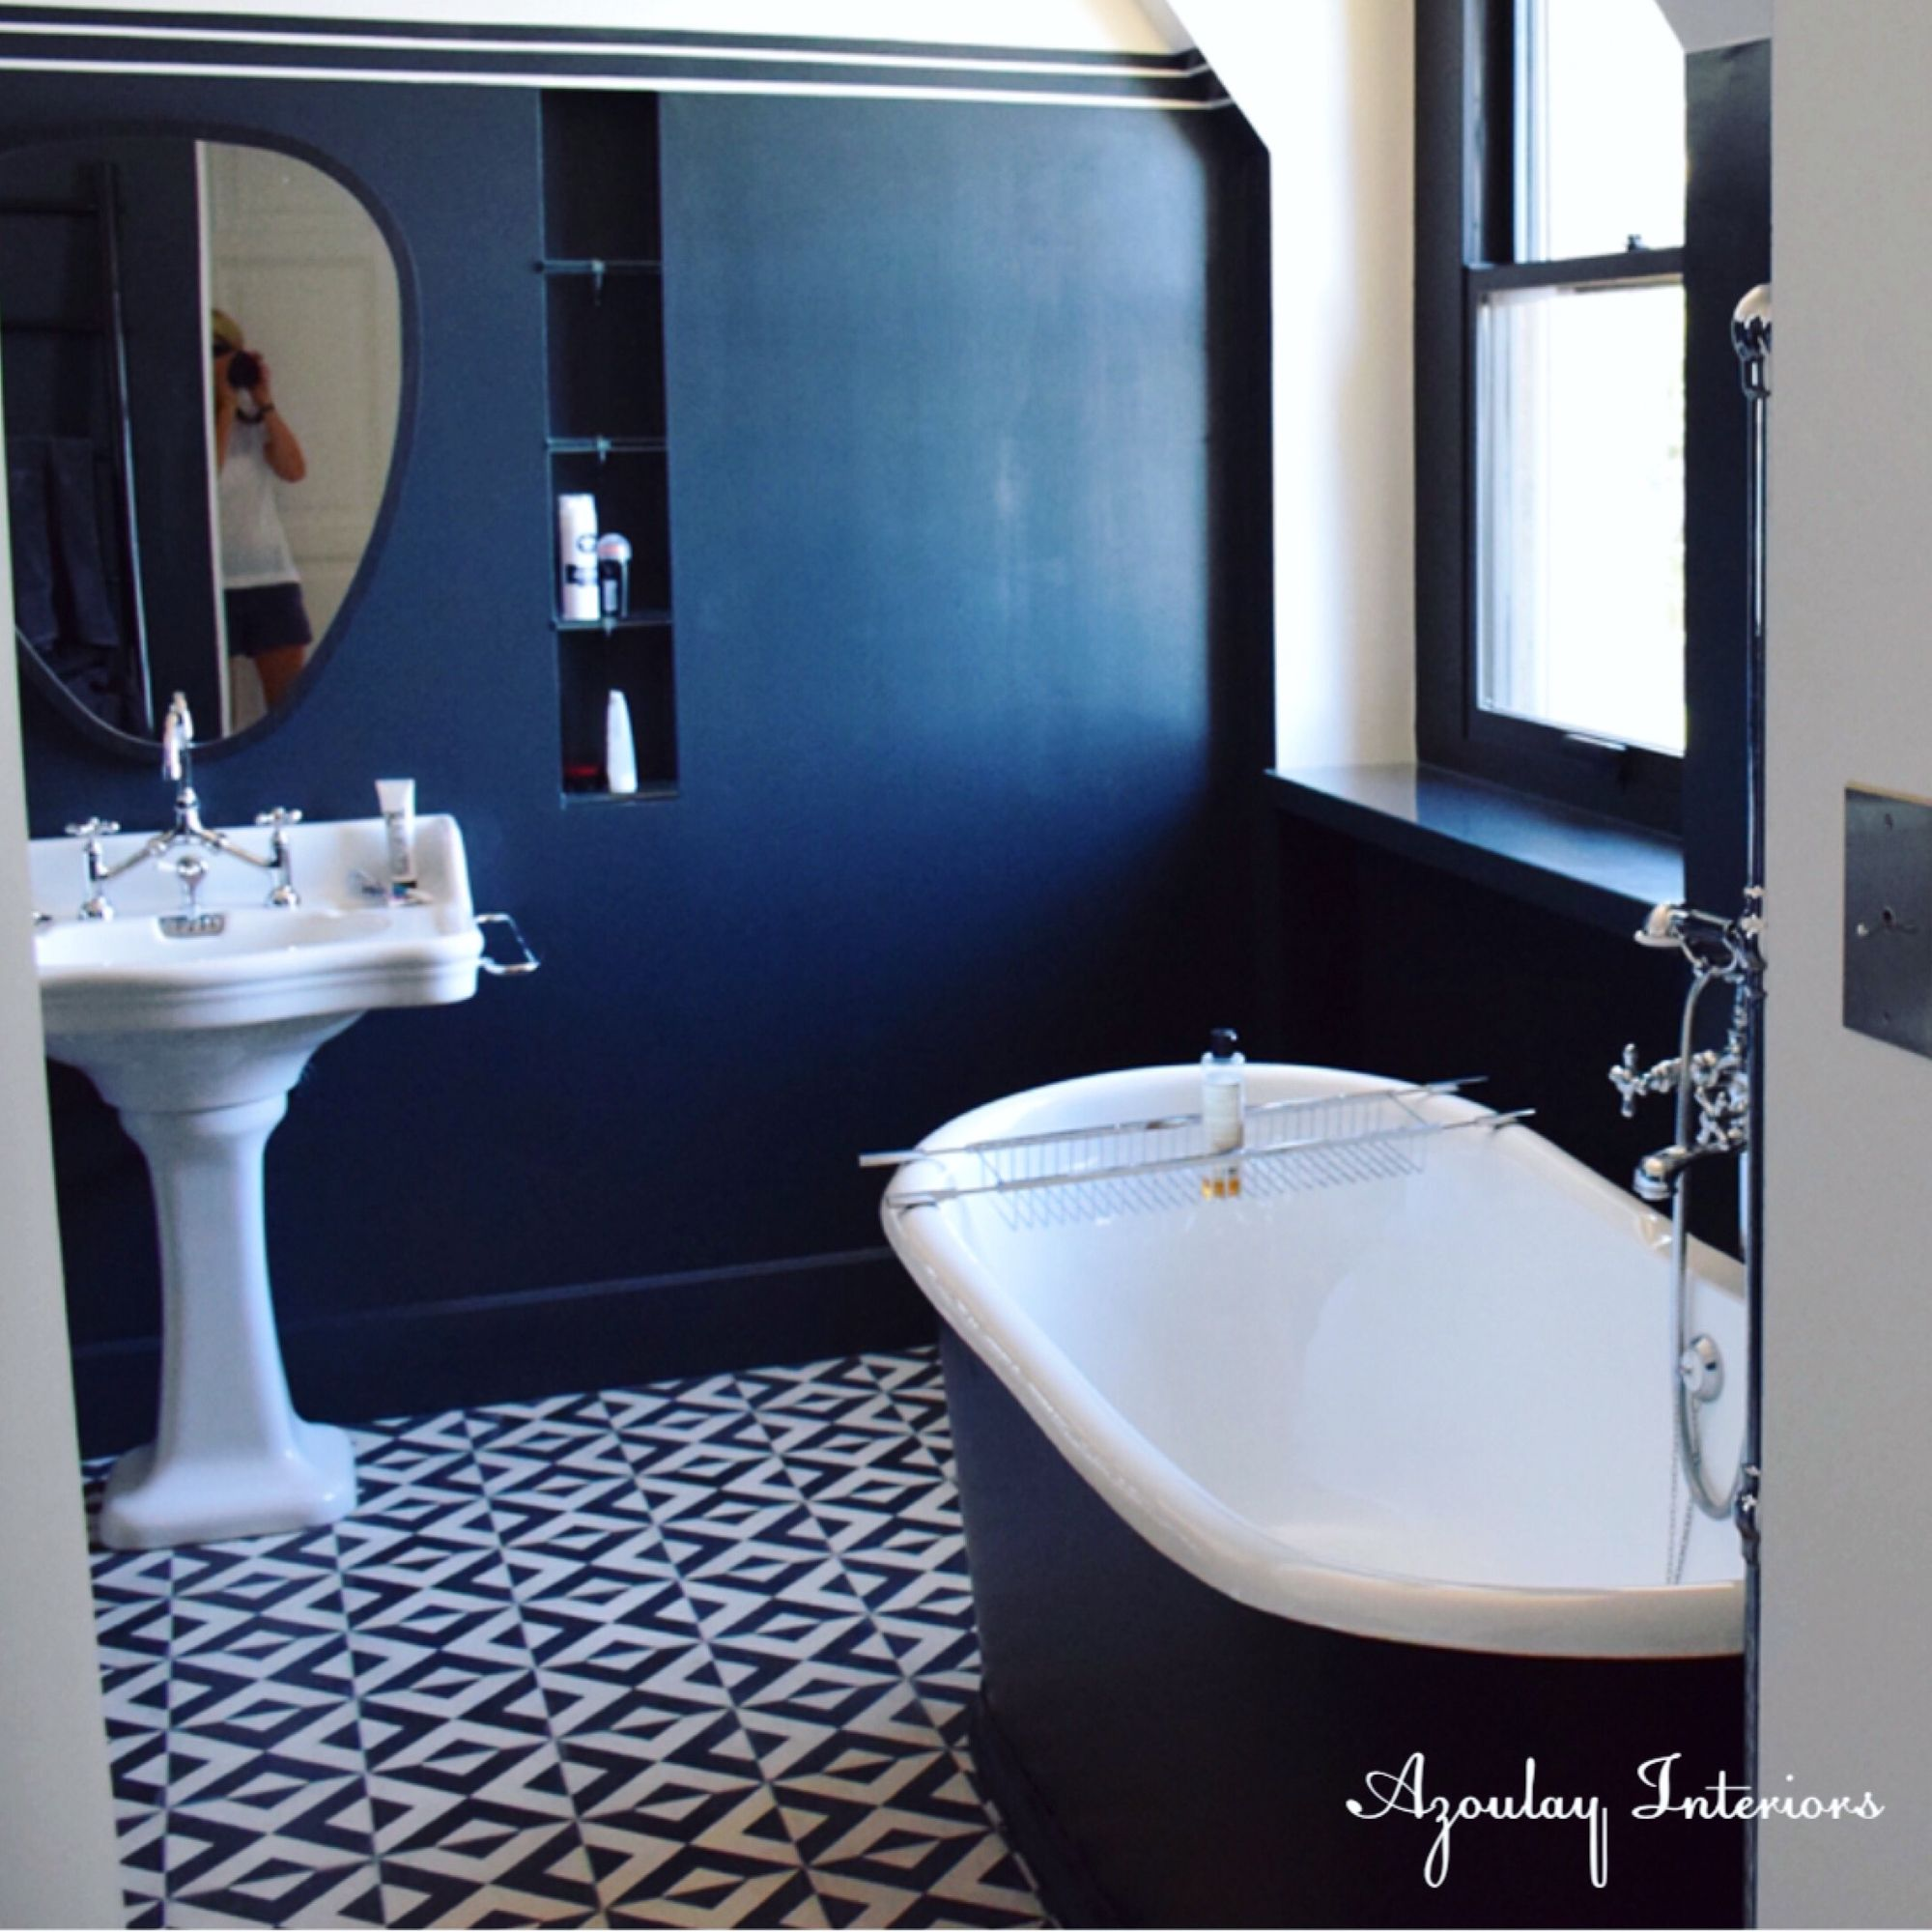 African tiles bathroom - For This Bathroom We Used African Design Cement Tiles From Carocim The Walls Are